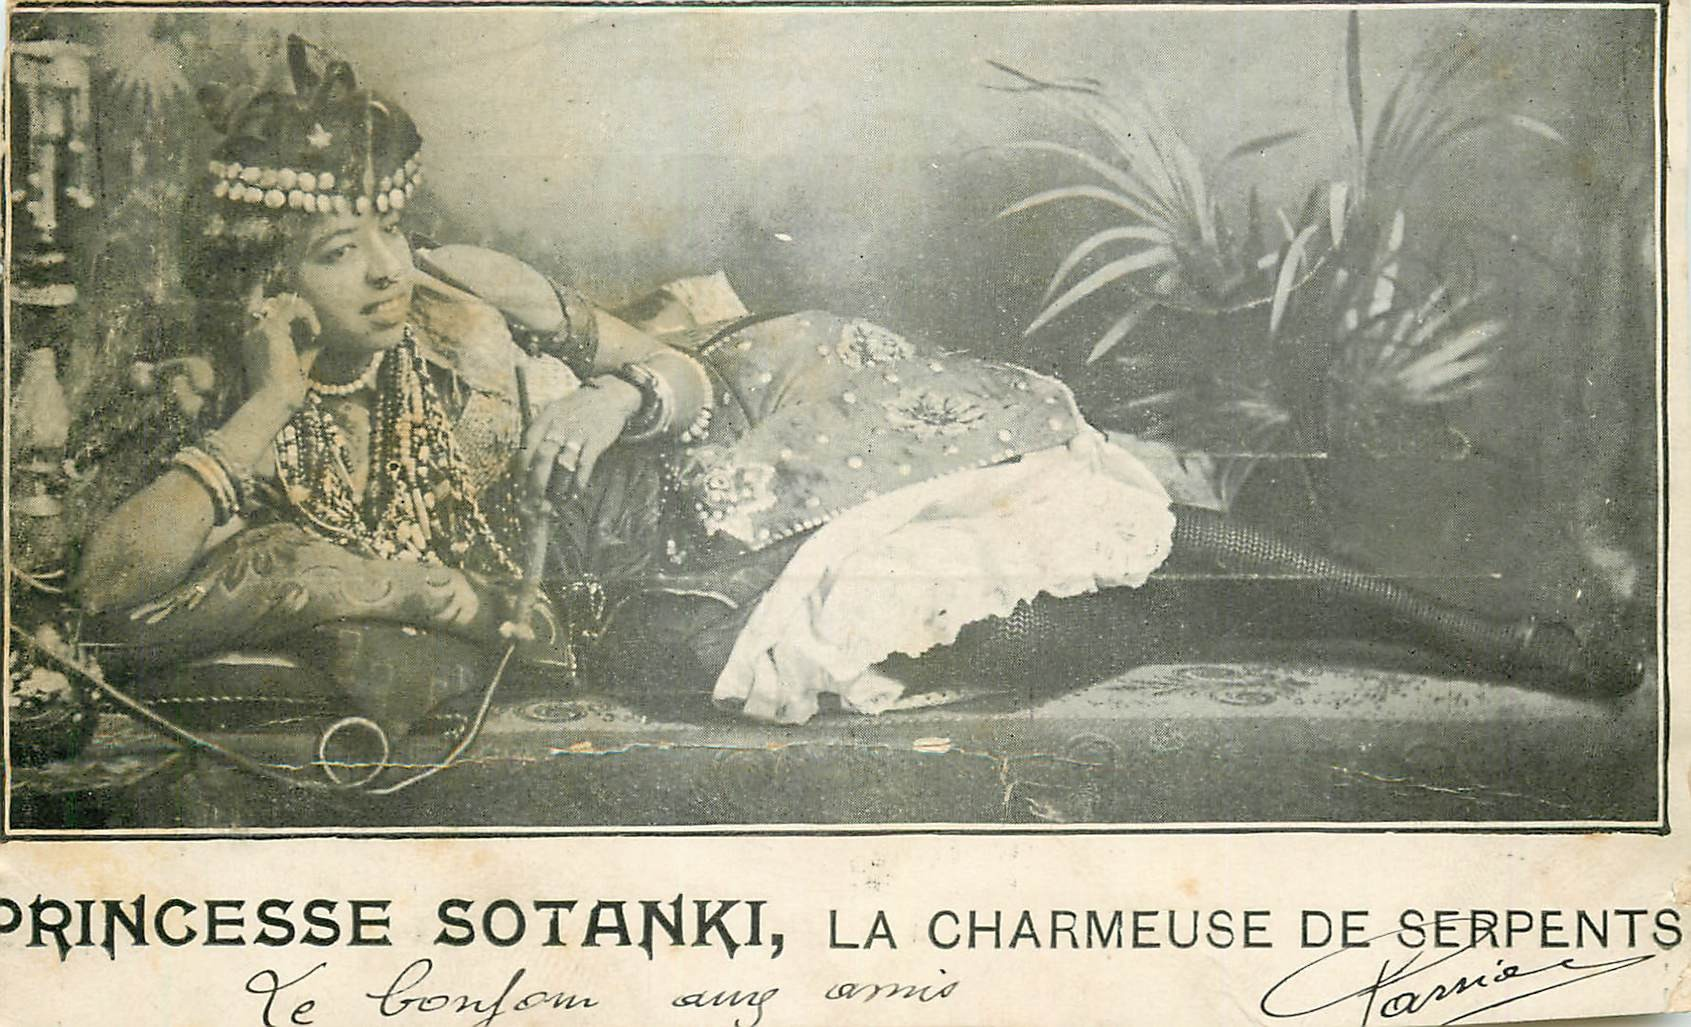 WW CIRQUE. Princesse Sotanki charmause de Serpents